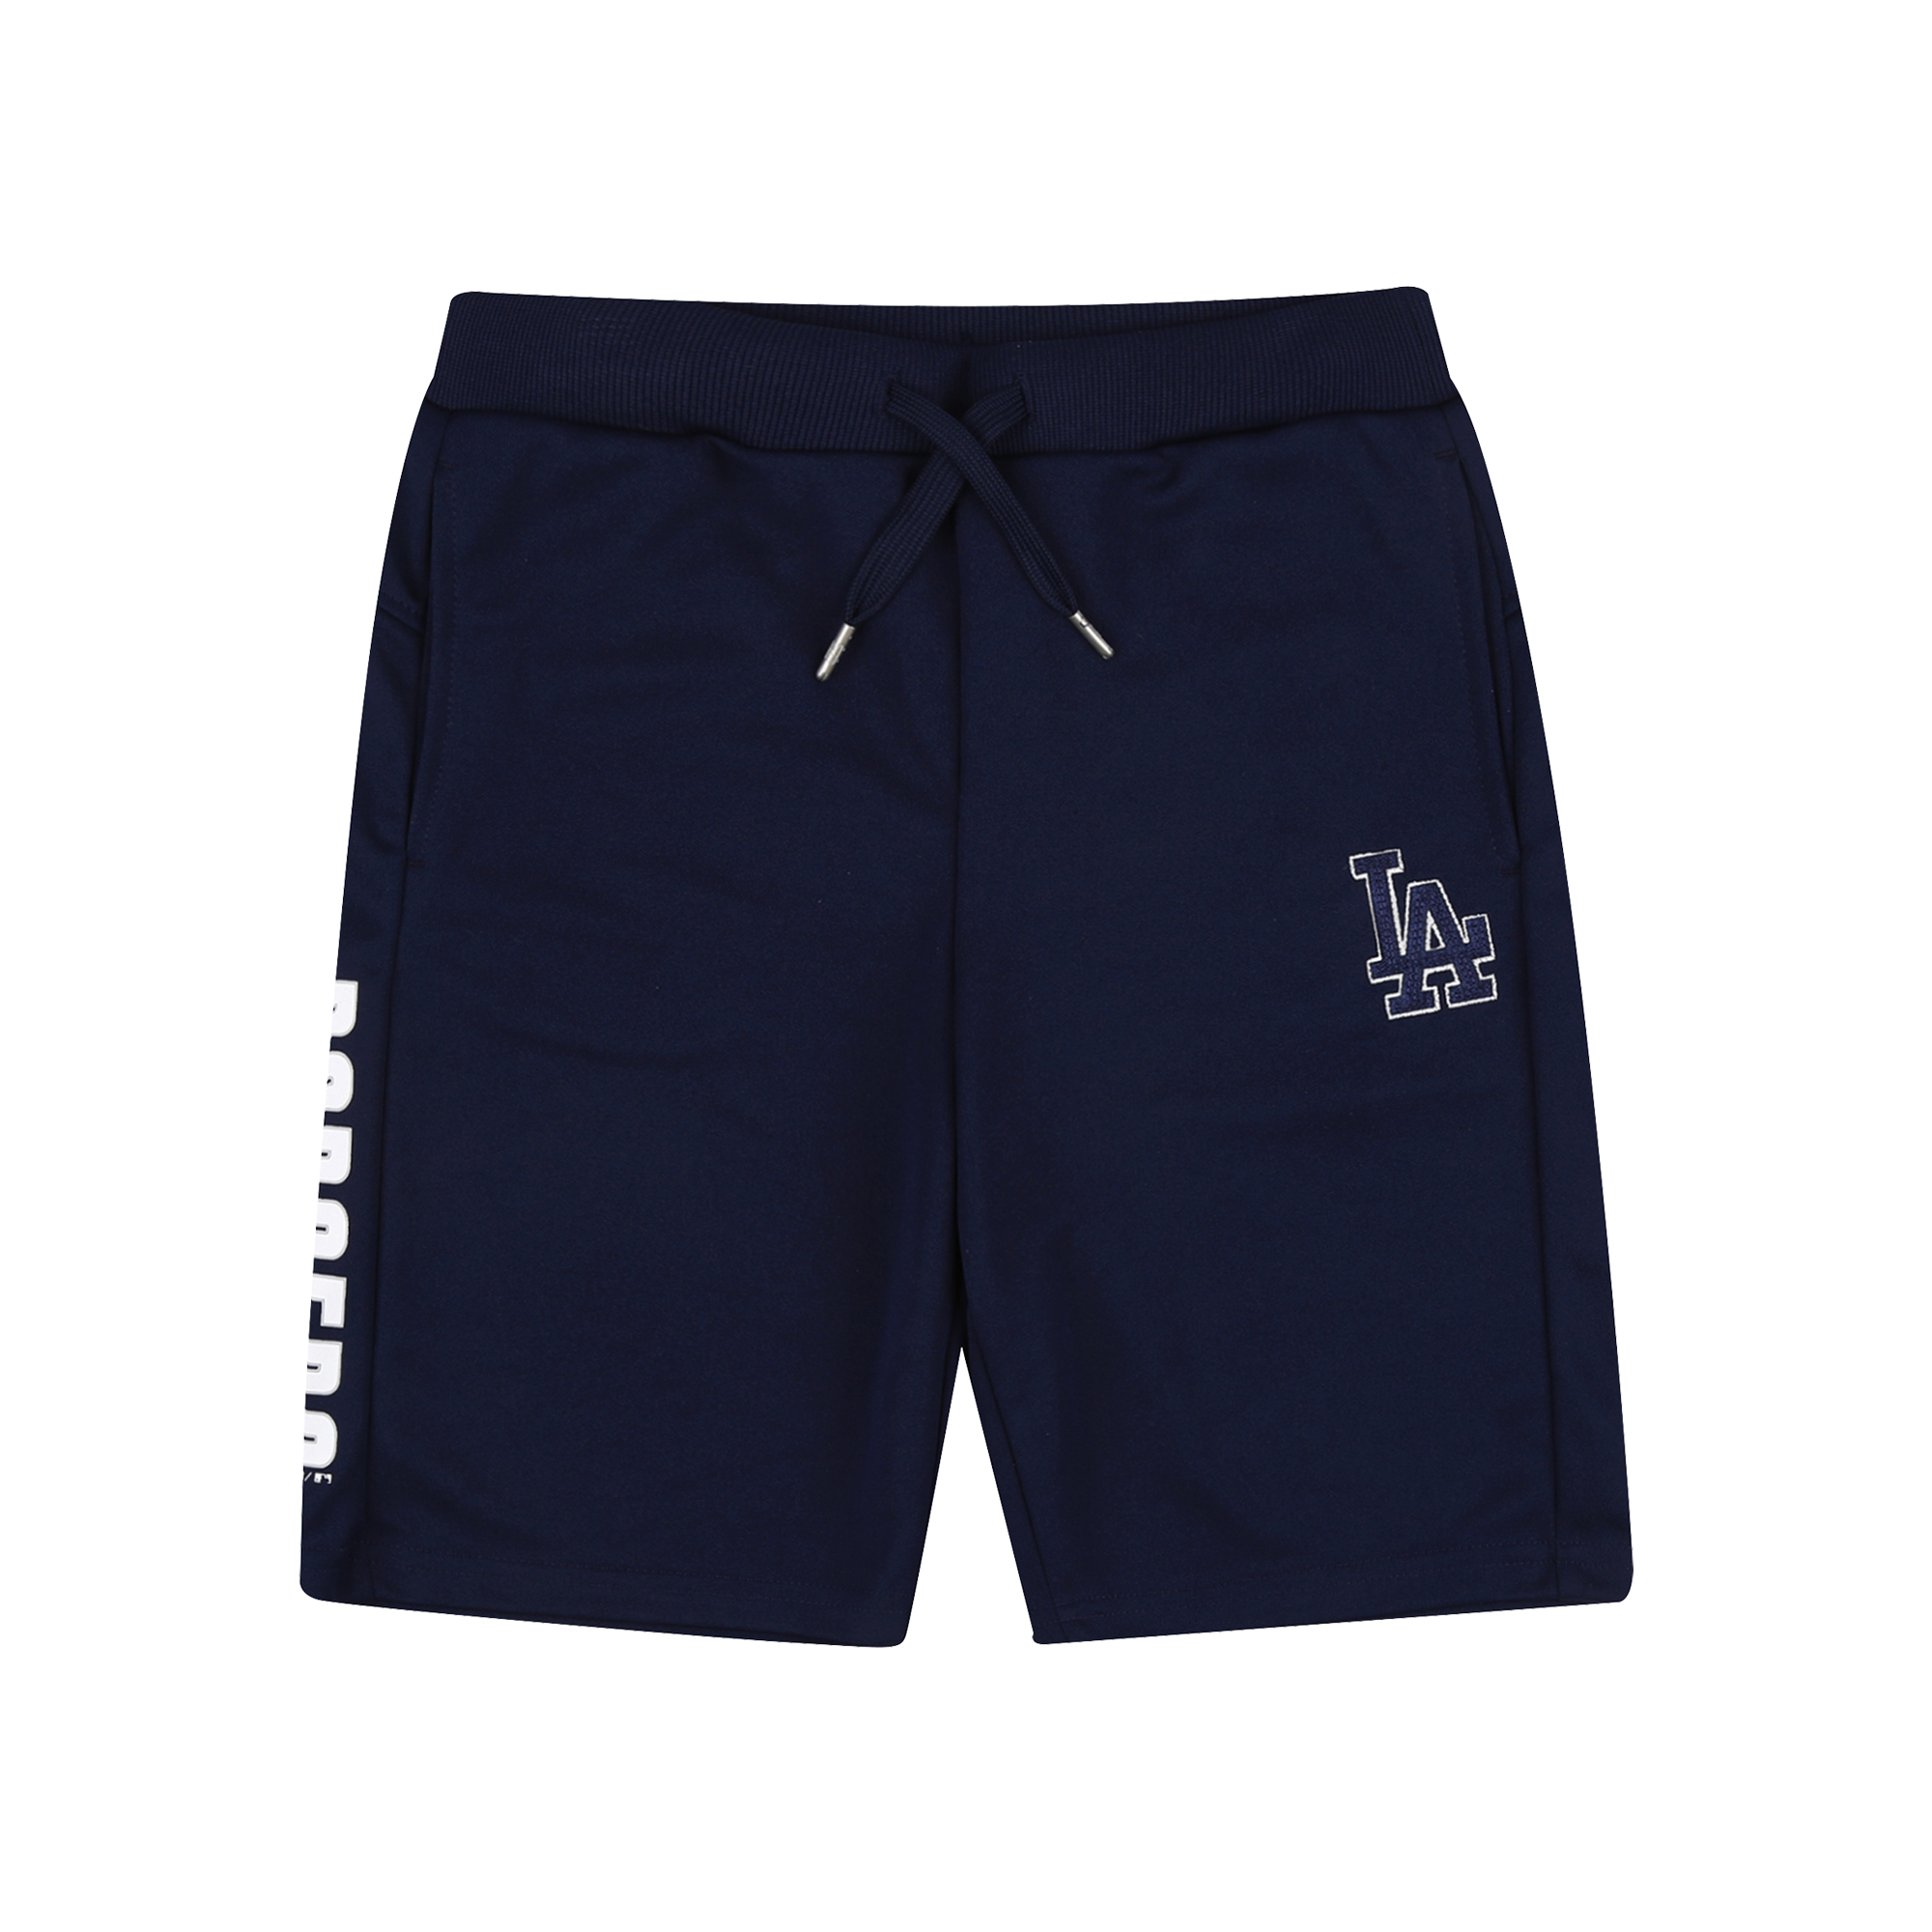 LA DODGERS UNISEX SIDELINE LOGO KNEE LENGTH PANTS